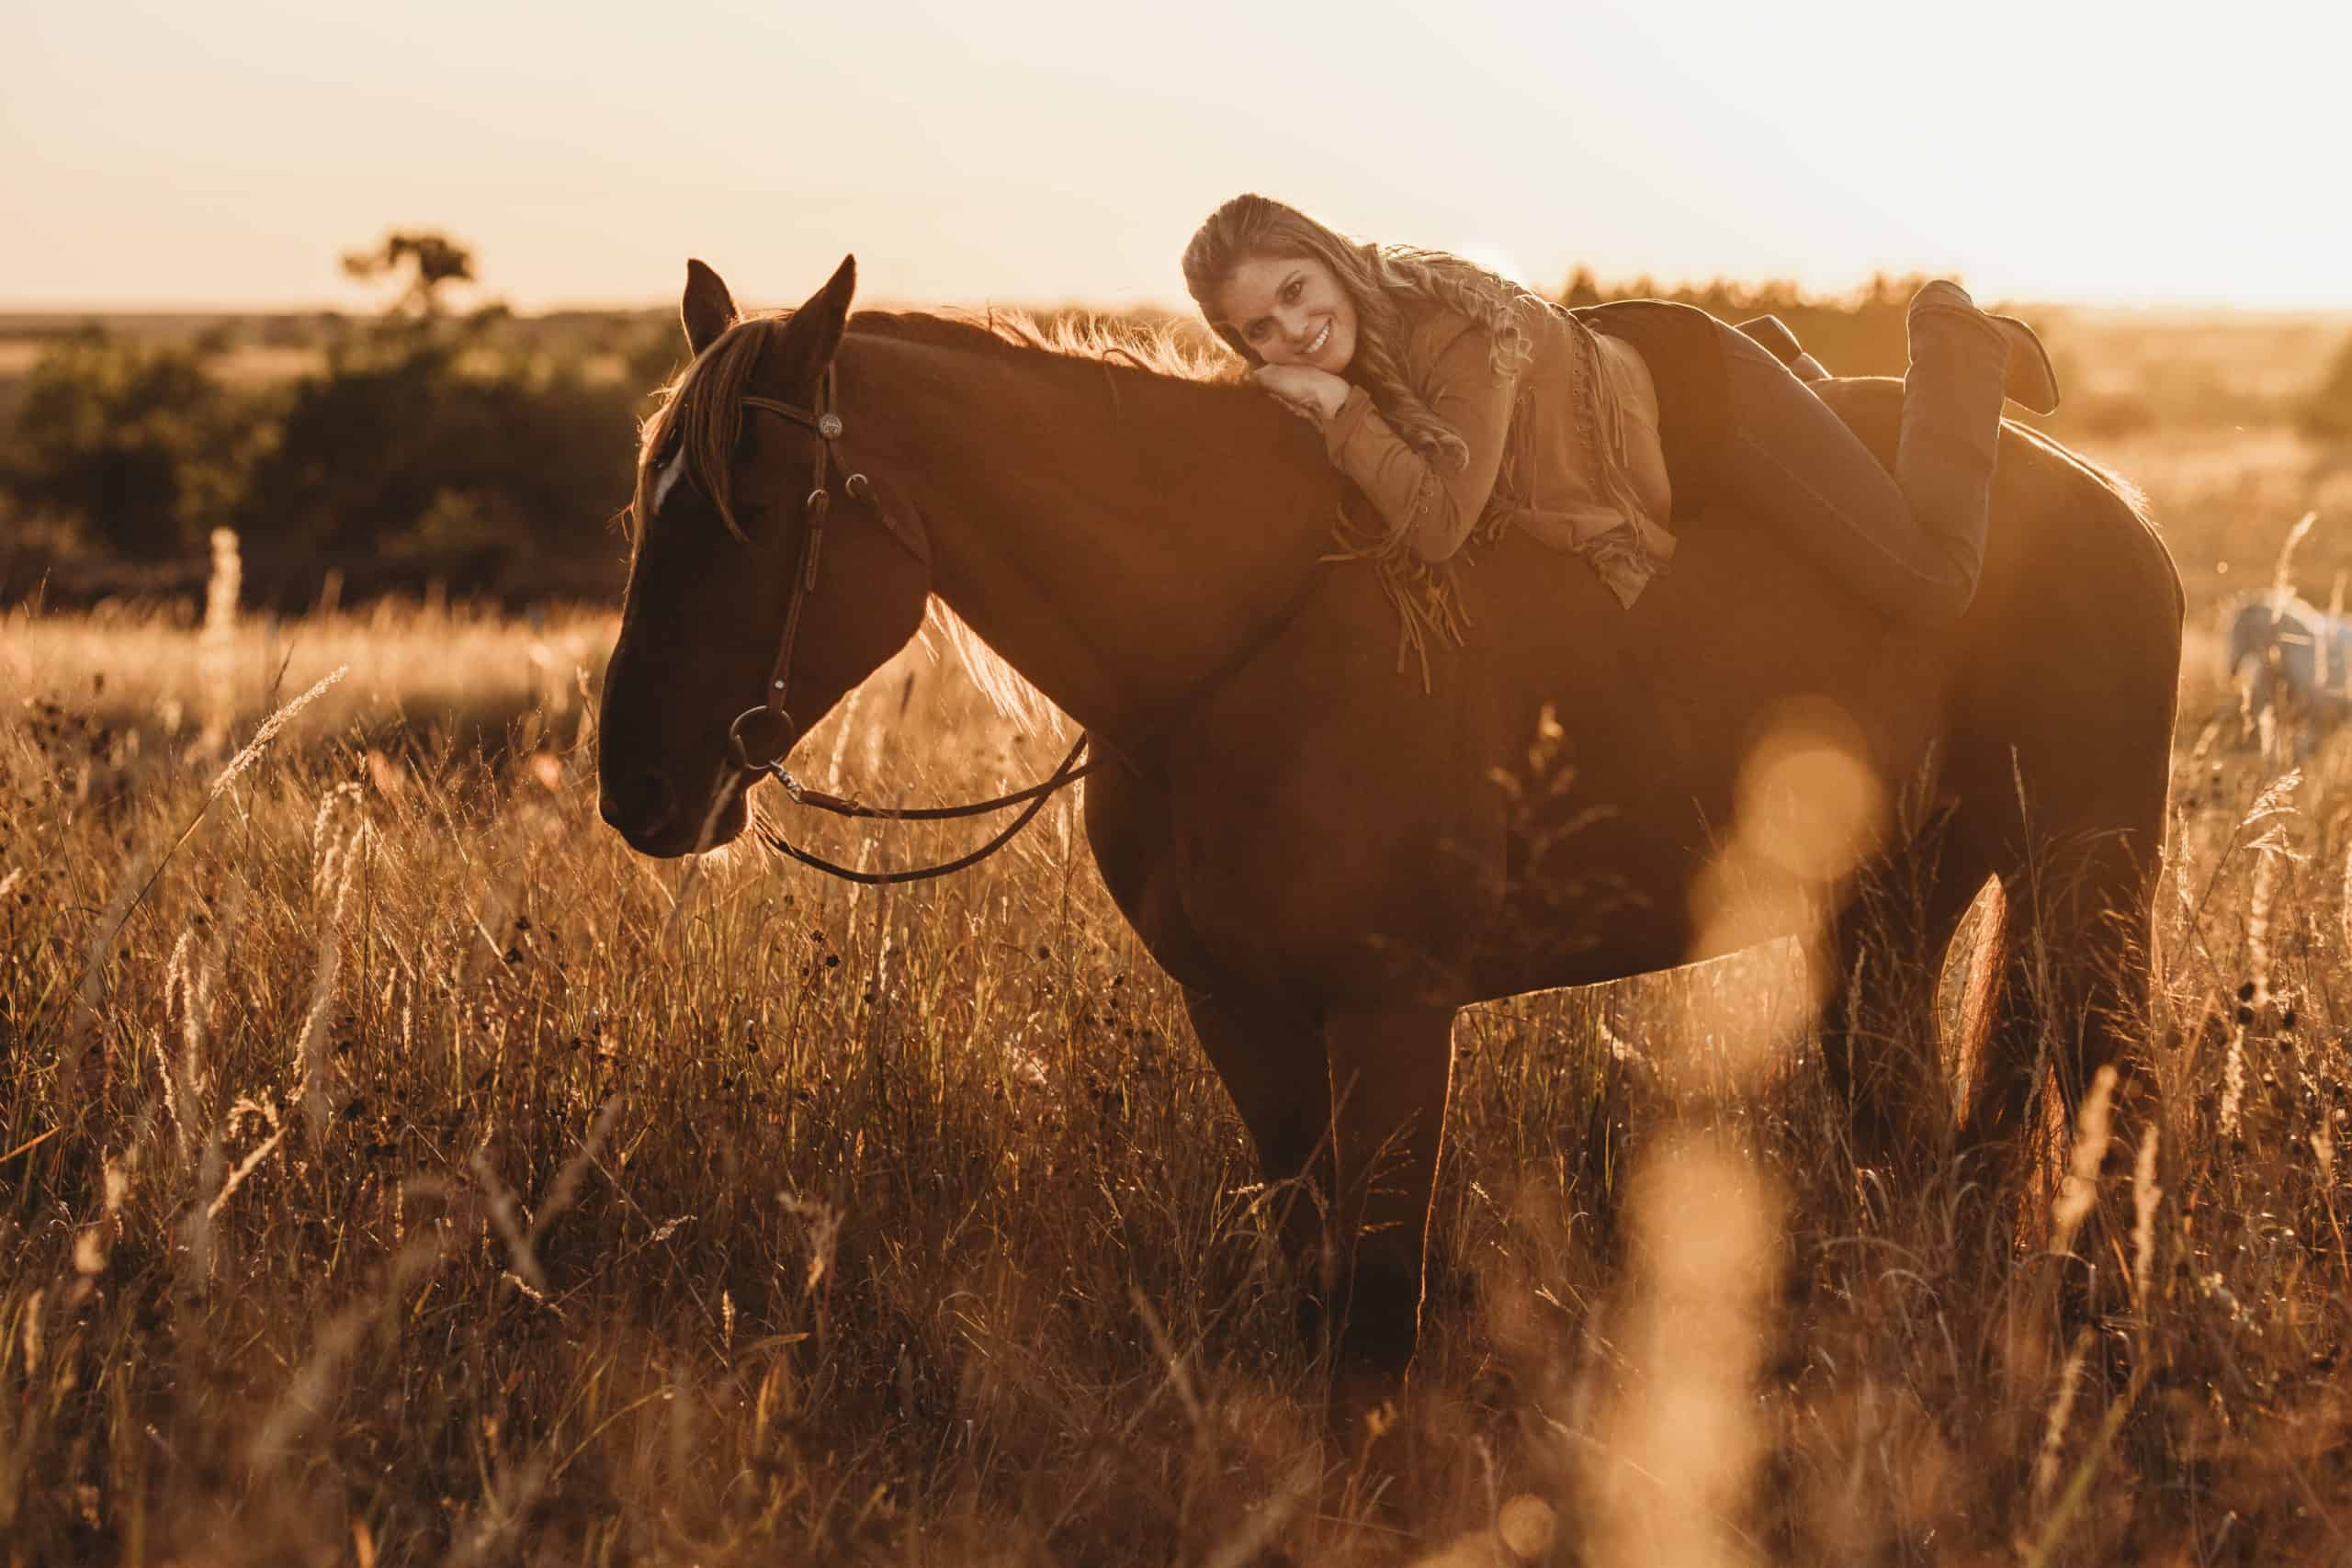 missi george rescue horse goodbye photoshoot annie kat photography cowgirl magazine